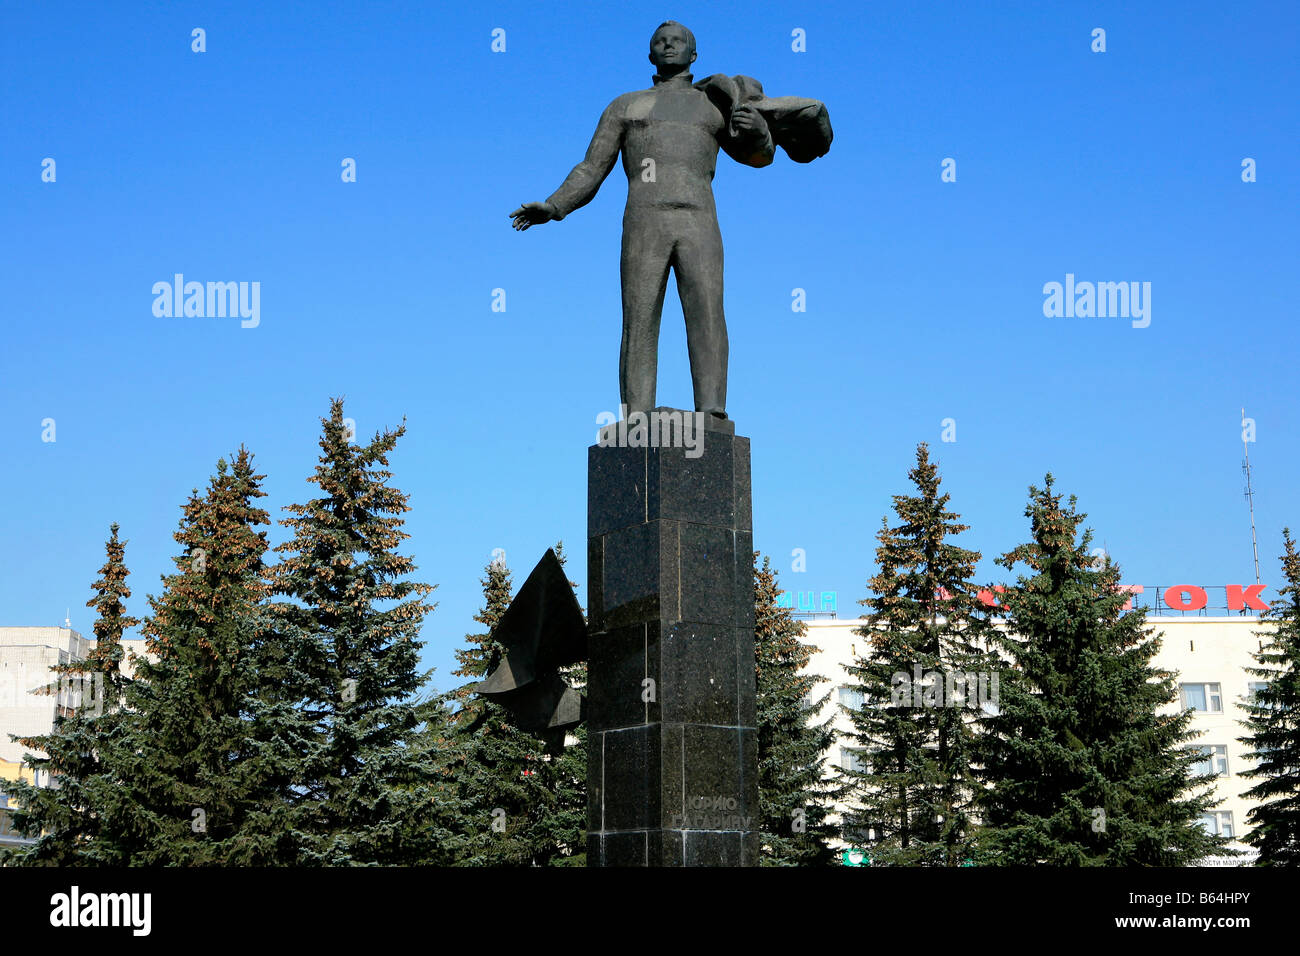 Soviet memorial dedicated to cosmonauts from kaliningrad - Statue Of The World S First Human In Space Cosmonaut Yuri Gagarin At The Main Square In